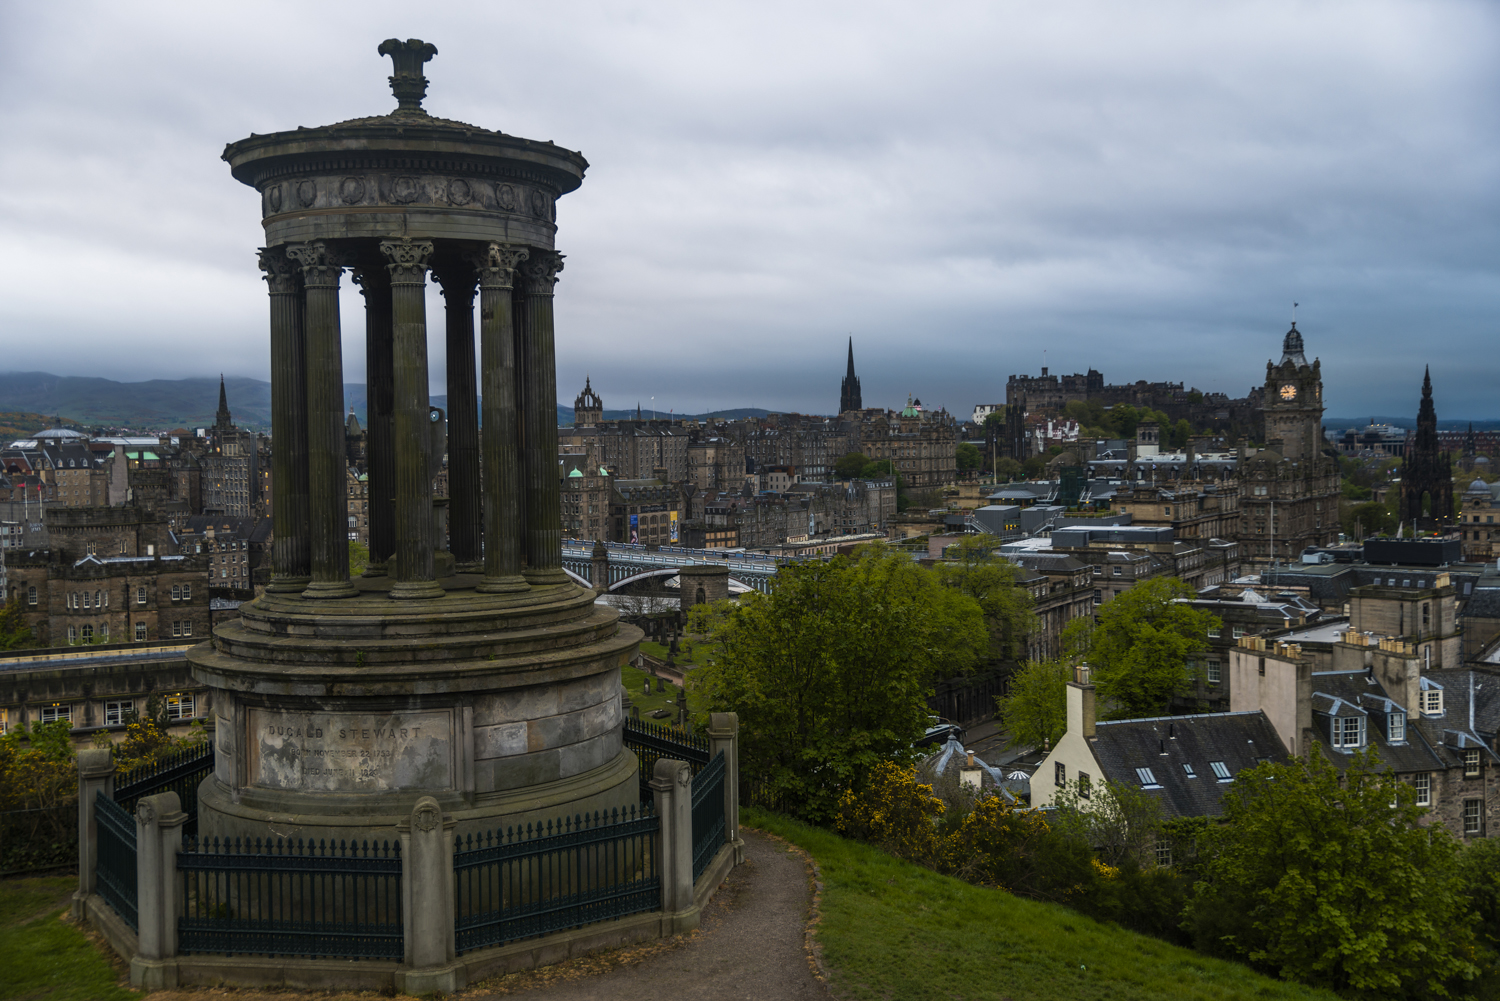 https://sleeklens.com/wp-content/uploads/2016/10/EdinburghMaj2015-D800-22.jpg